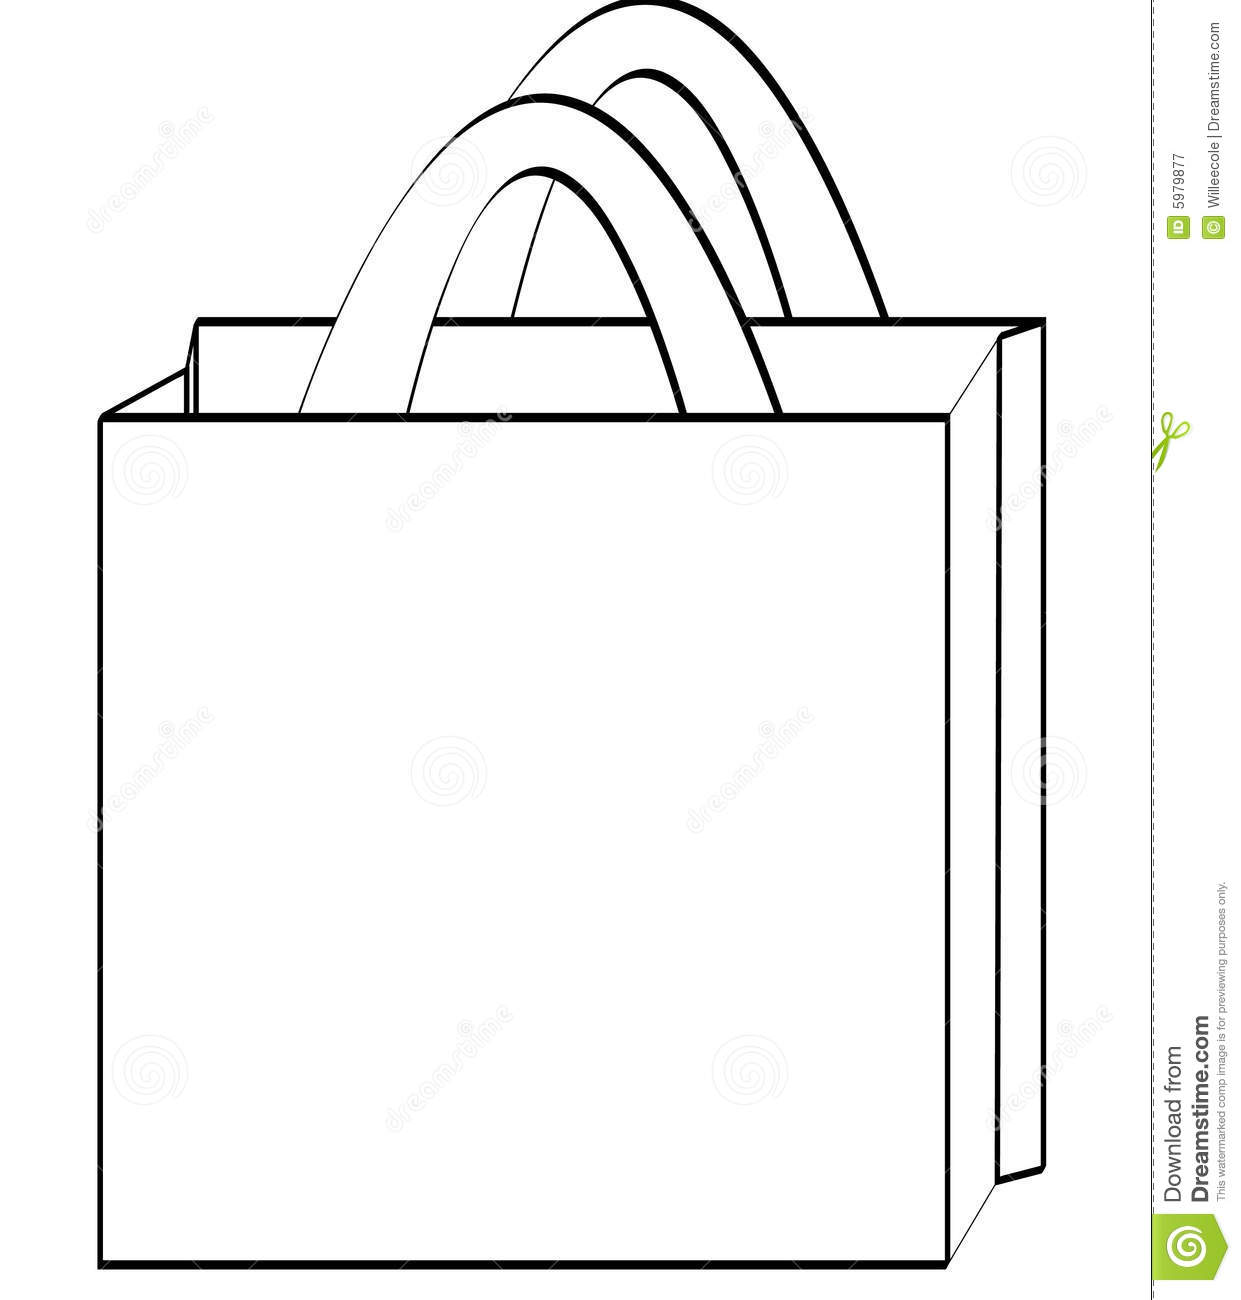 Shopping Bag Outline Royalty Free Stock Photography   Image  5979877